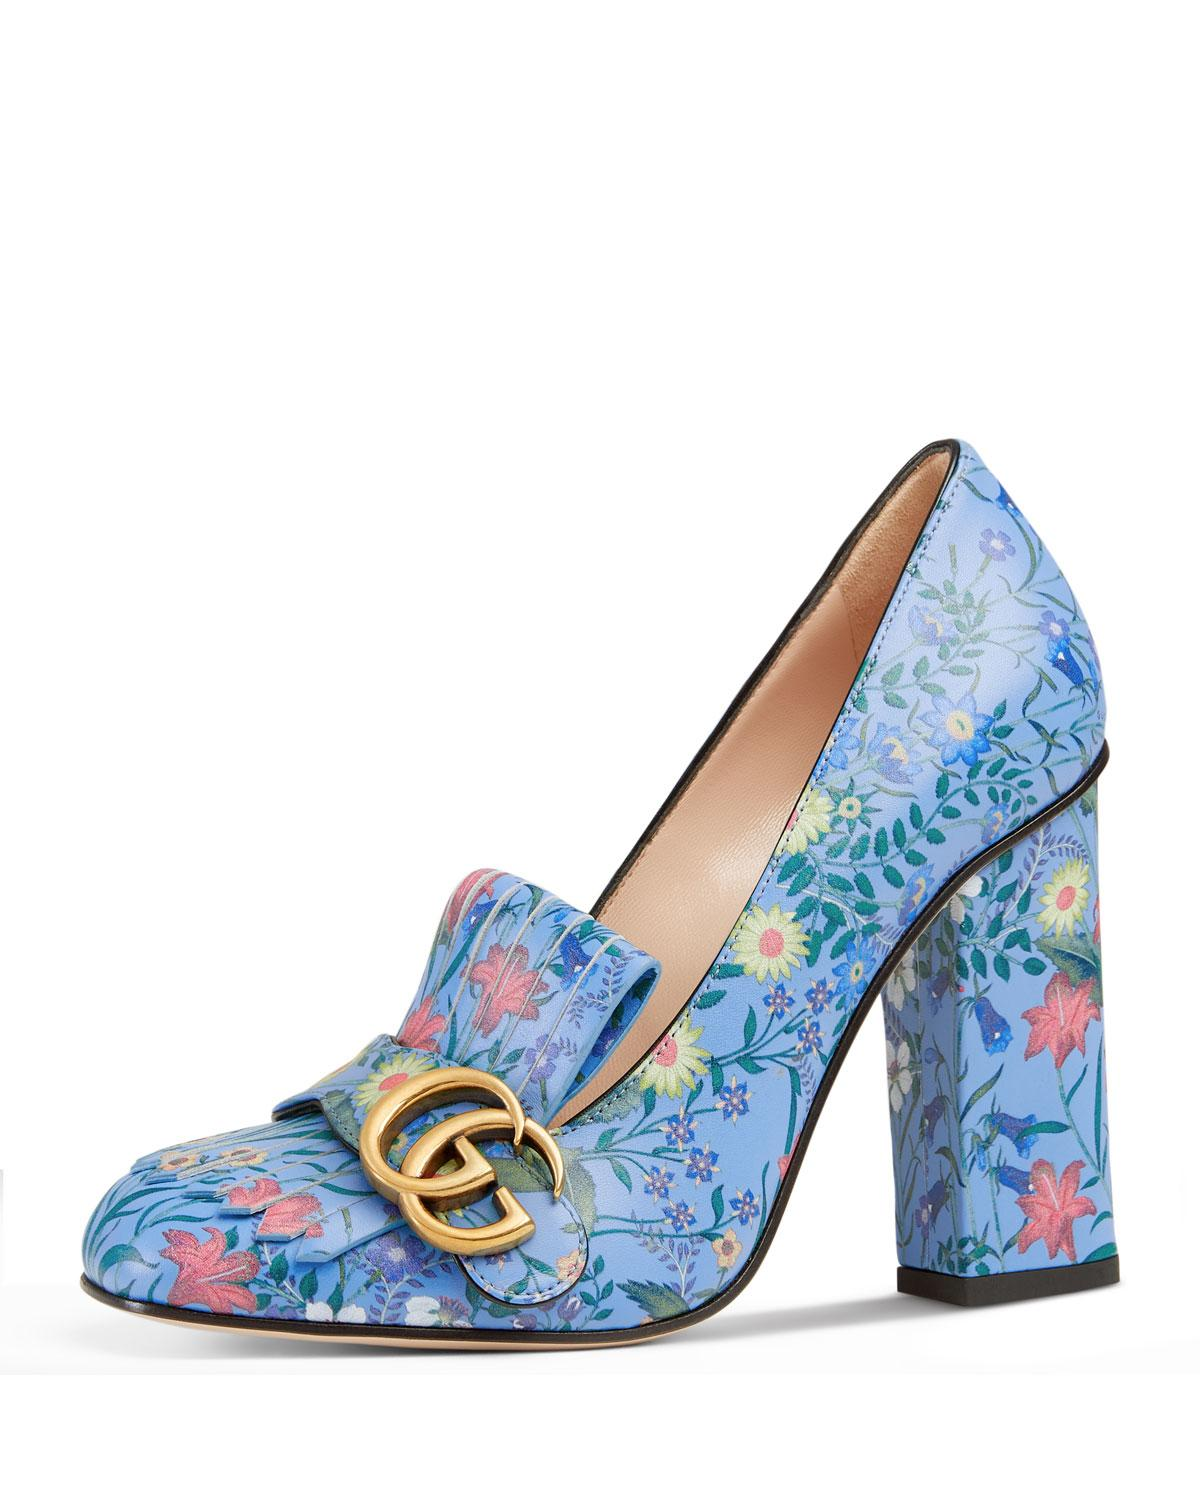 e7408f0bbae Lyst - Gucci Marmont New Floral Loafer Pump in Blue